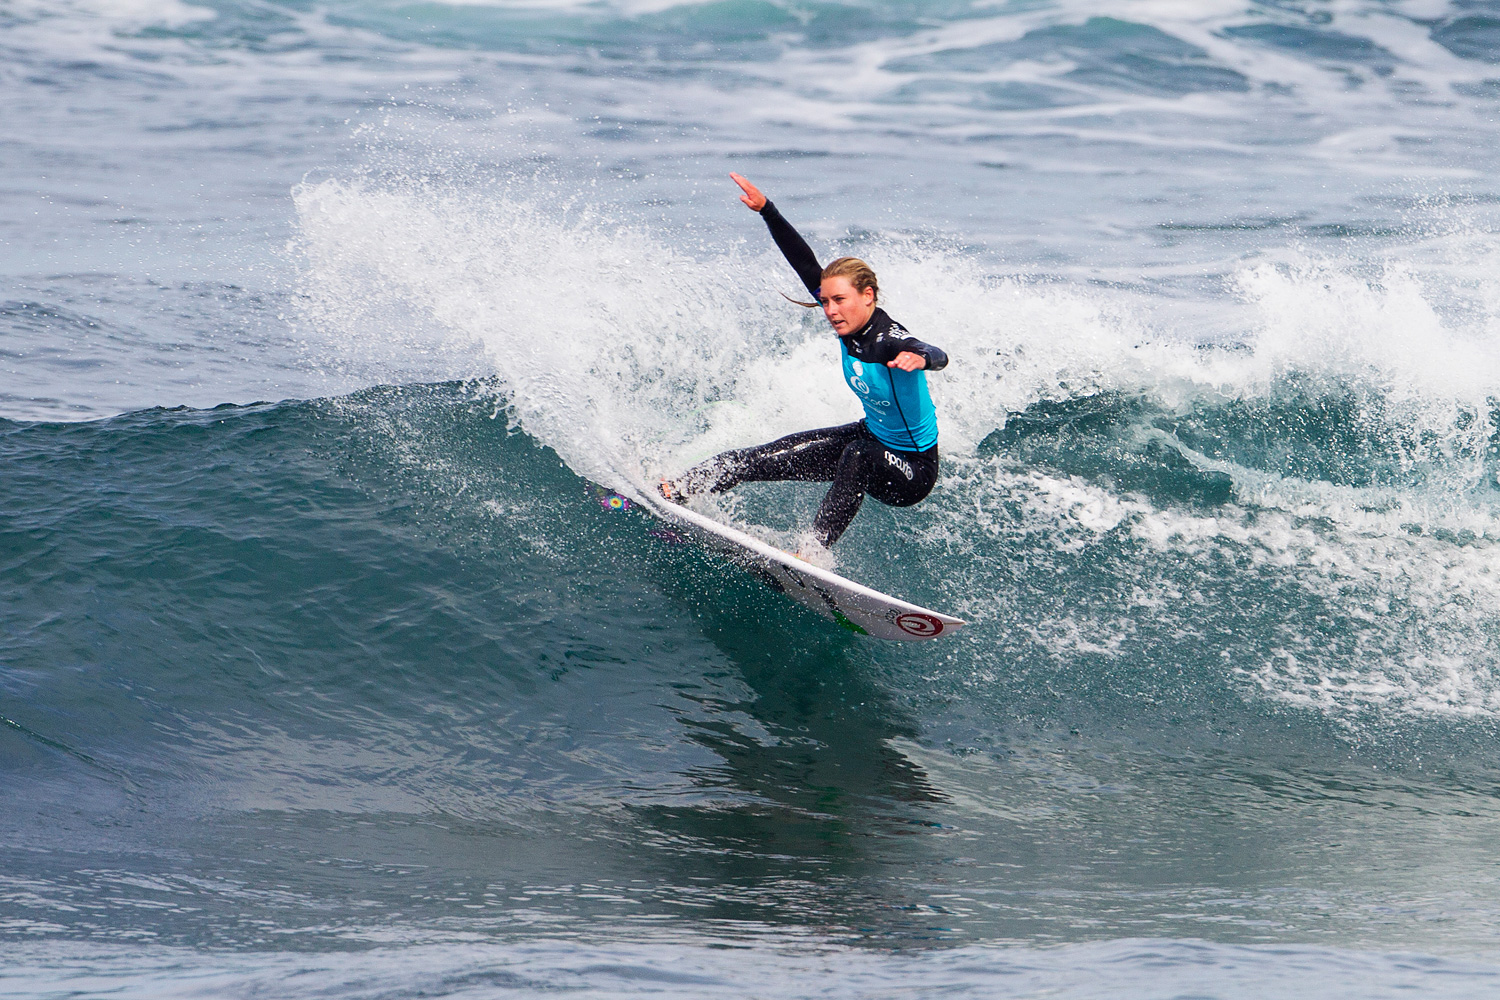 Niki Van Dijk surfs to victory during the first day of the Rip Curl Women's Pro at Bells Beach.